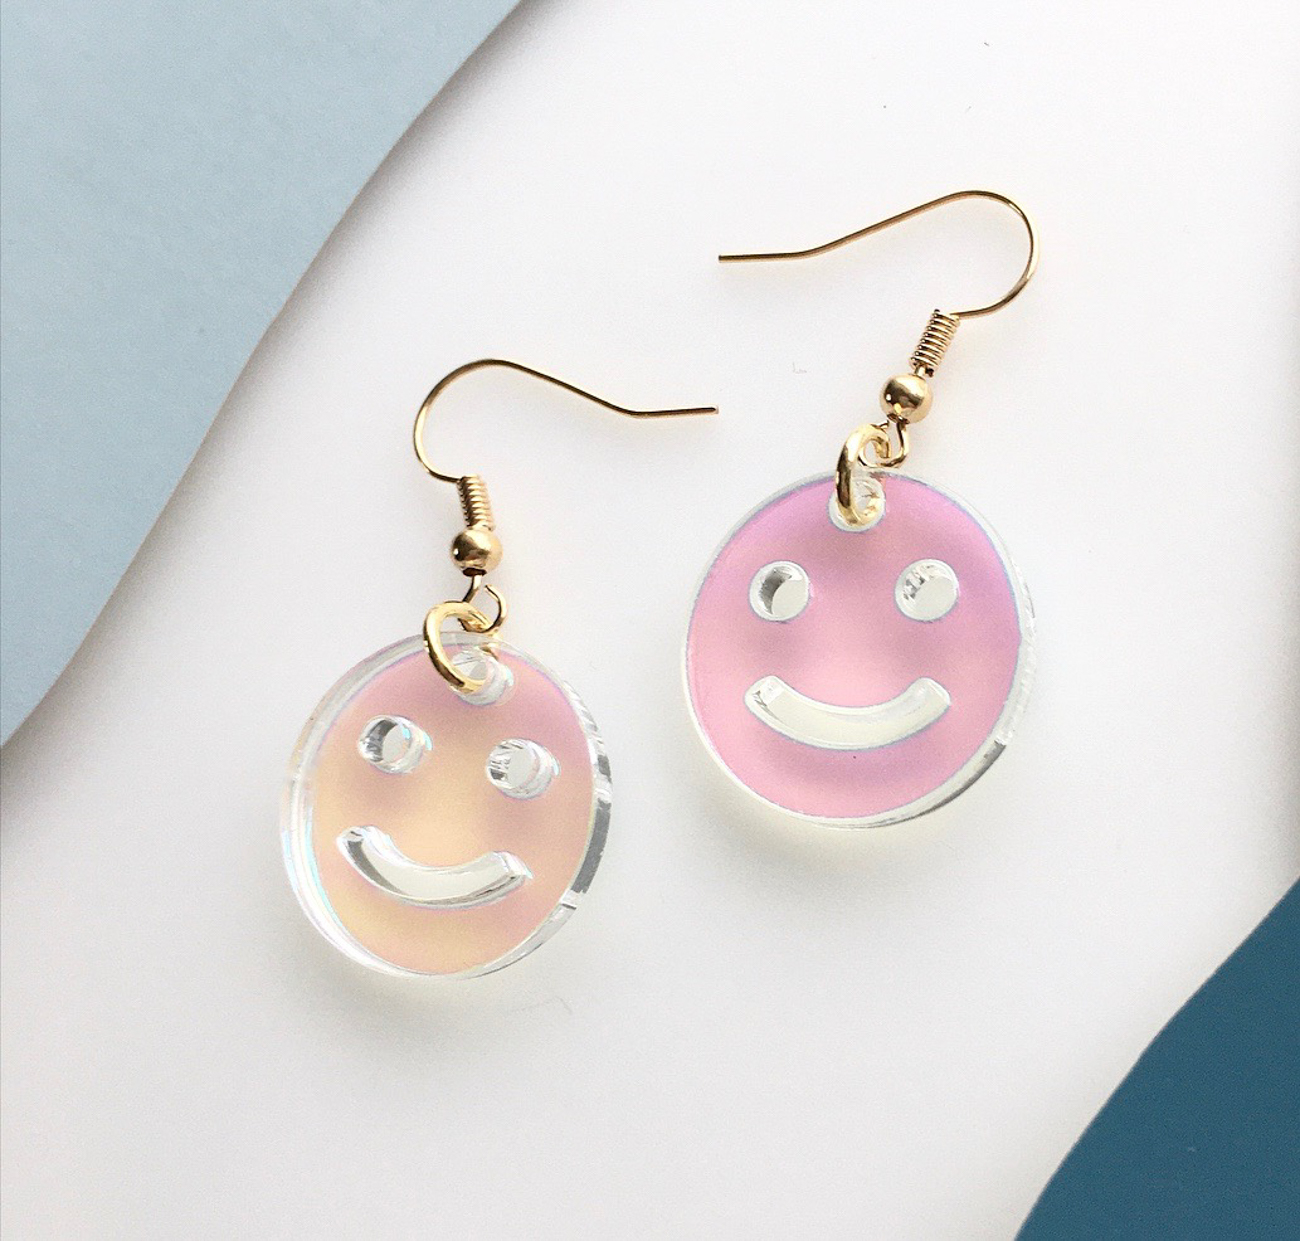 Iridescent laser-cut smiley face earrings{&nbsp;}/ Image: courtesy of Ellebrux // Published: 3.26.20{&nbsp;}<br><p></p>